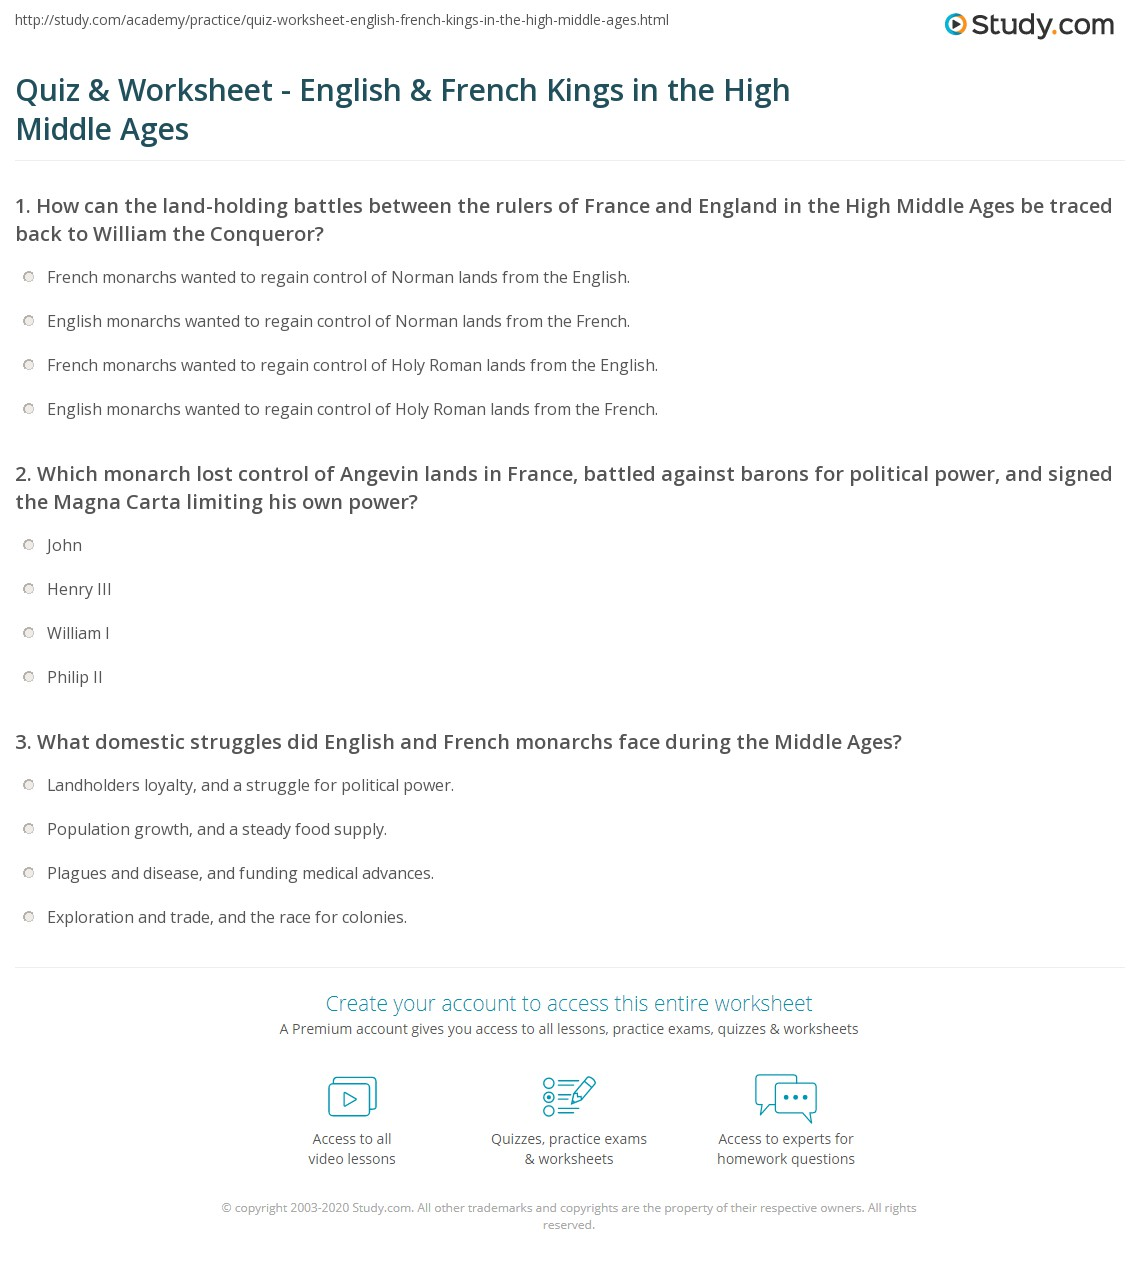 quiz worksheet english french kings in the high middle ages. Black Bedroom Furniture Sets. Home Design Ideas